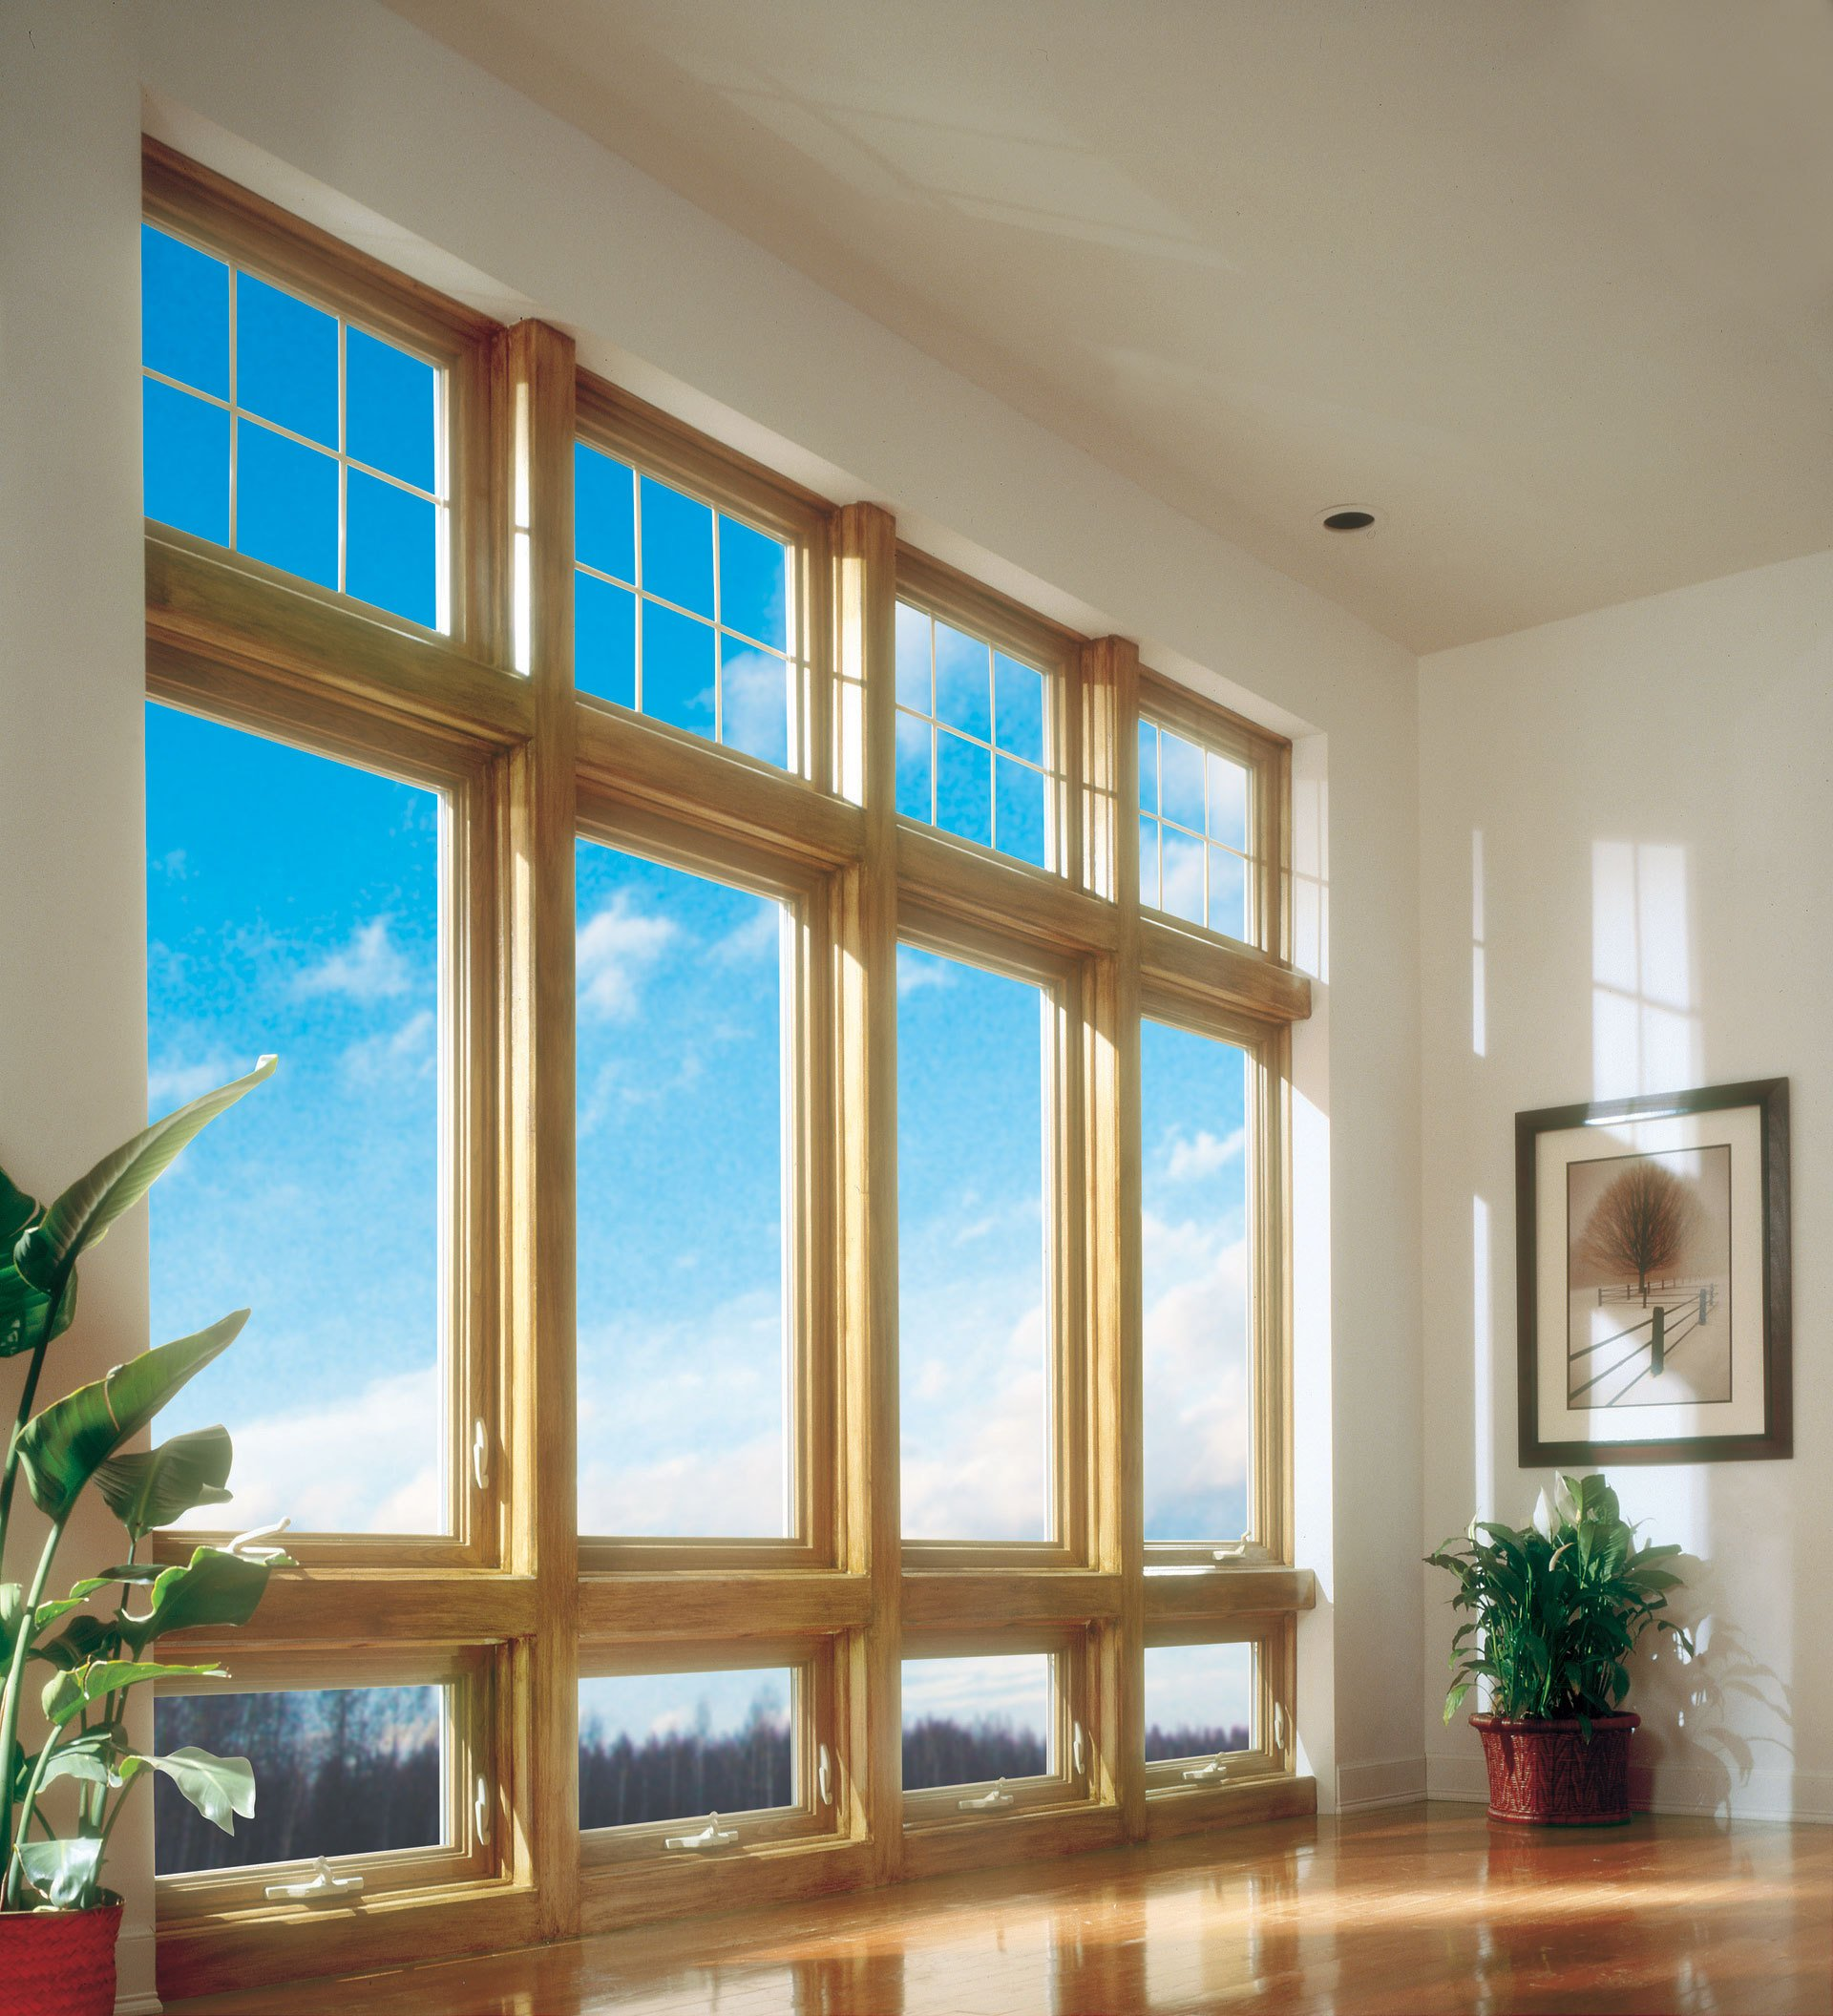 Vinyl replacement windows in cincinnati oh for Home window design pictures